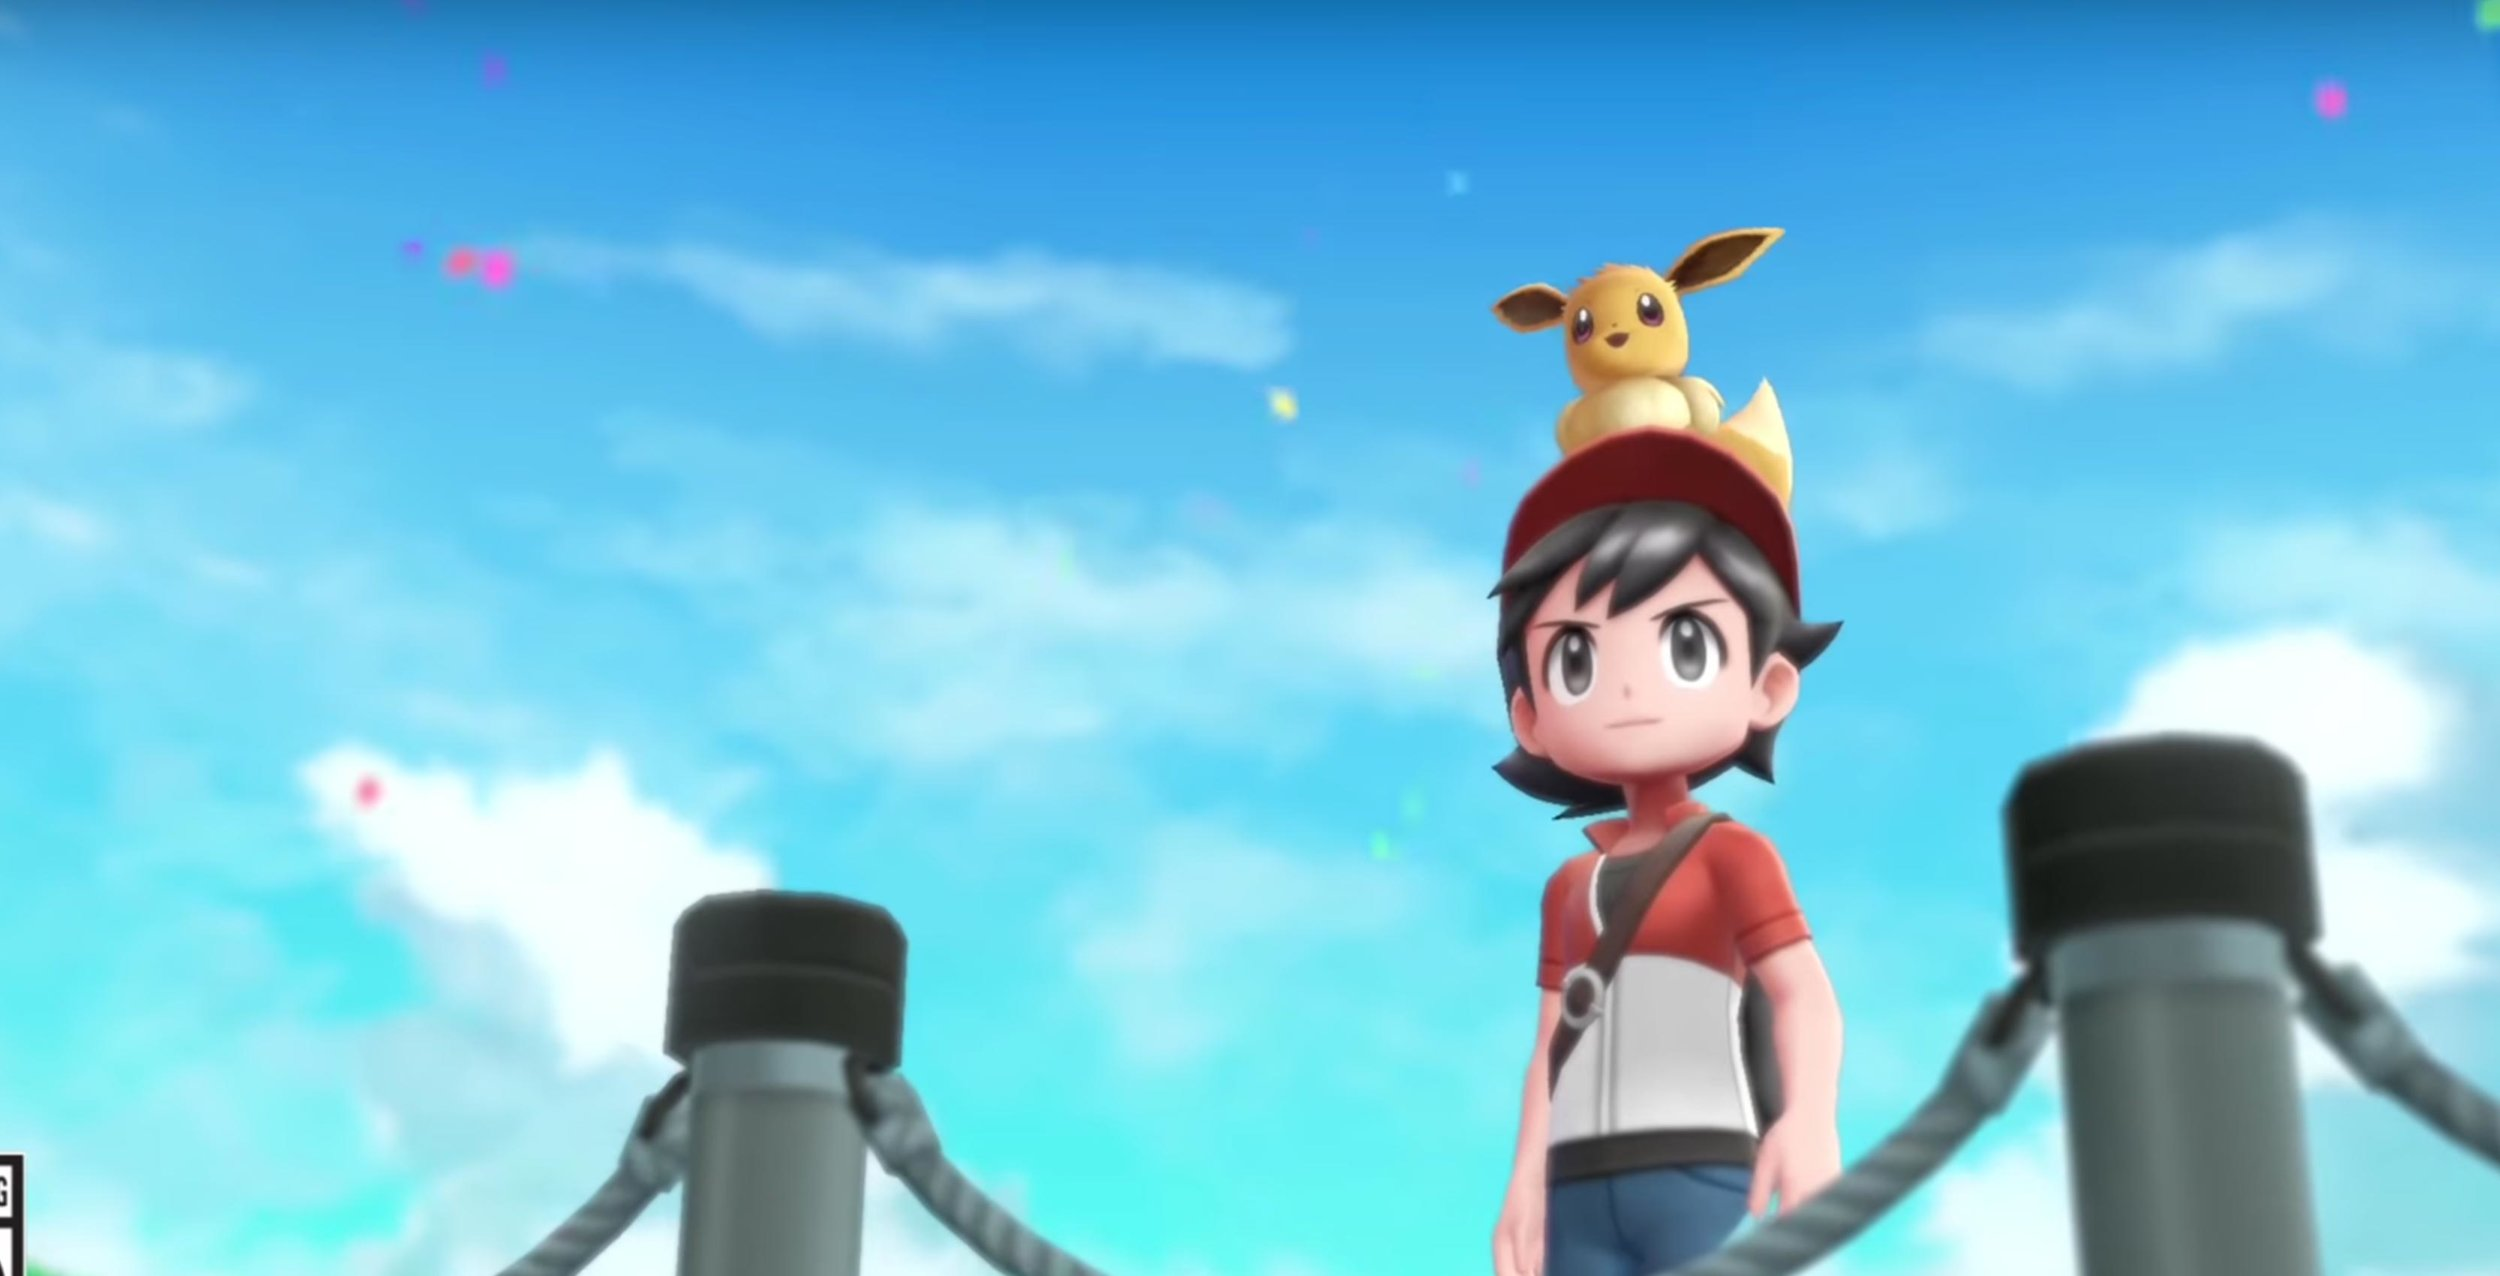 Do you have what it takes to be the very best?